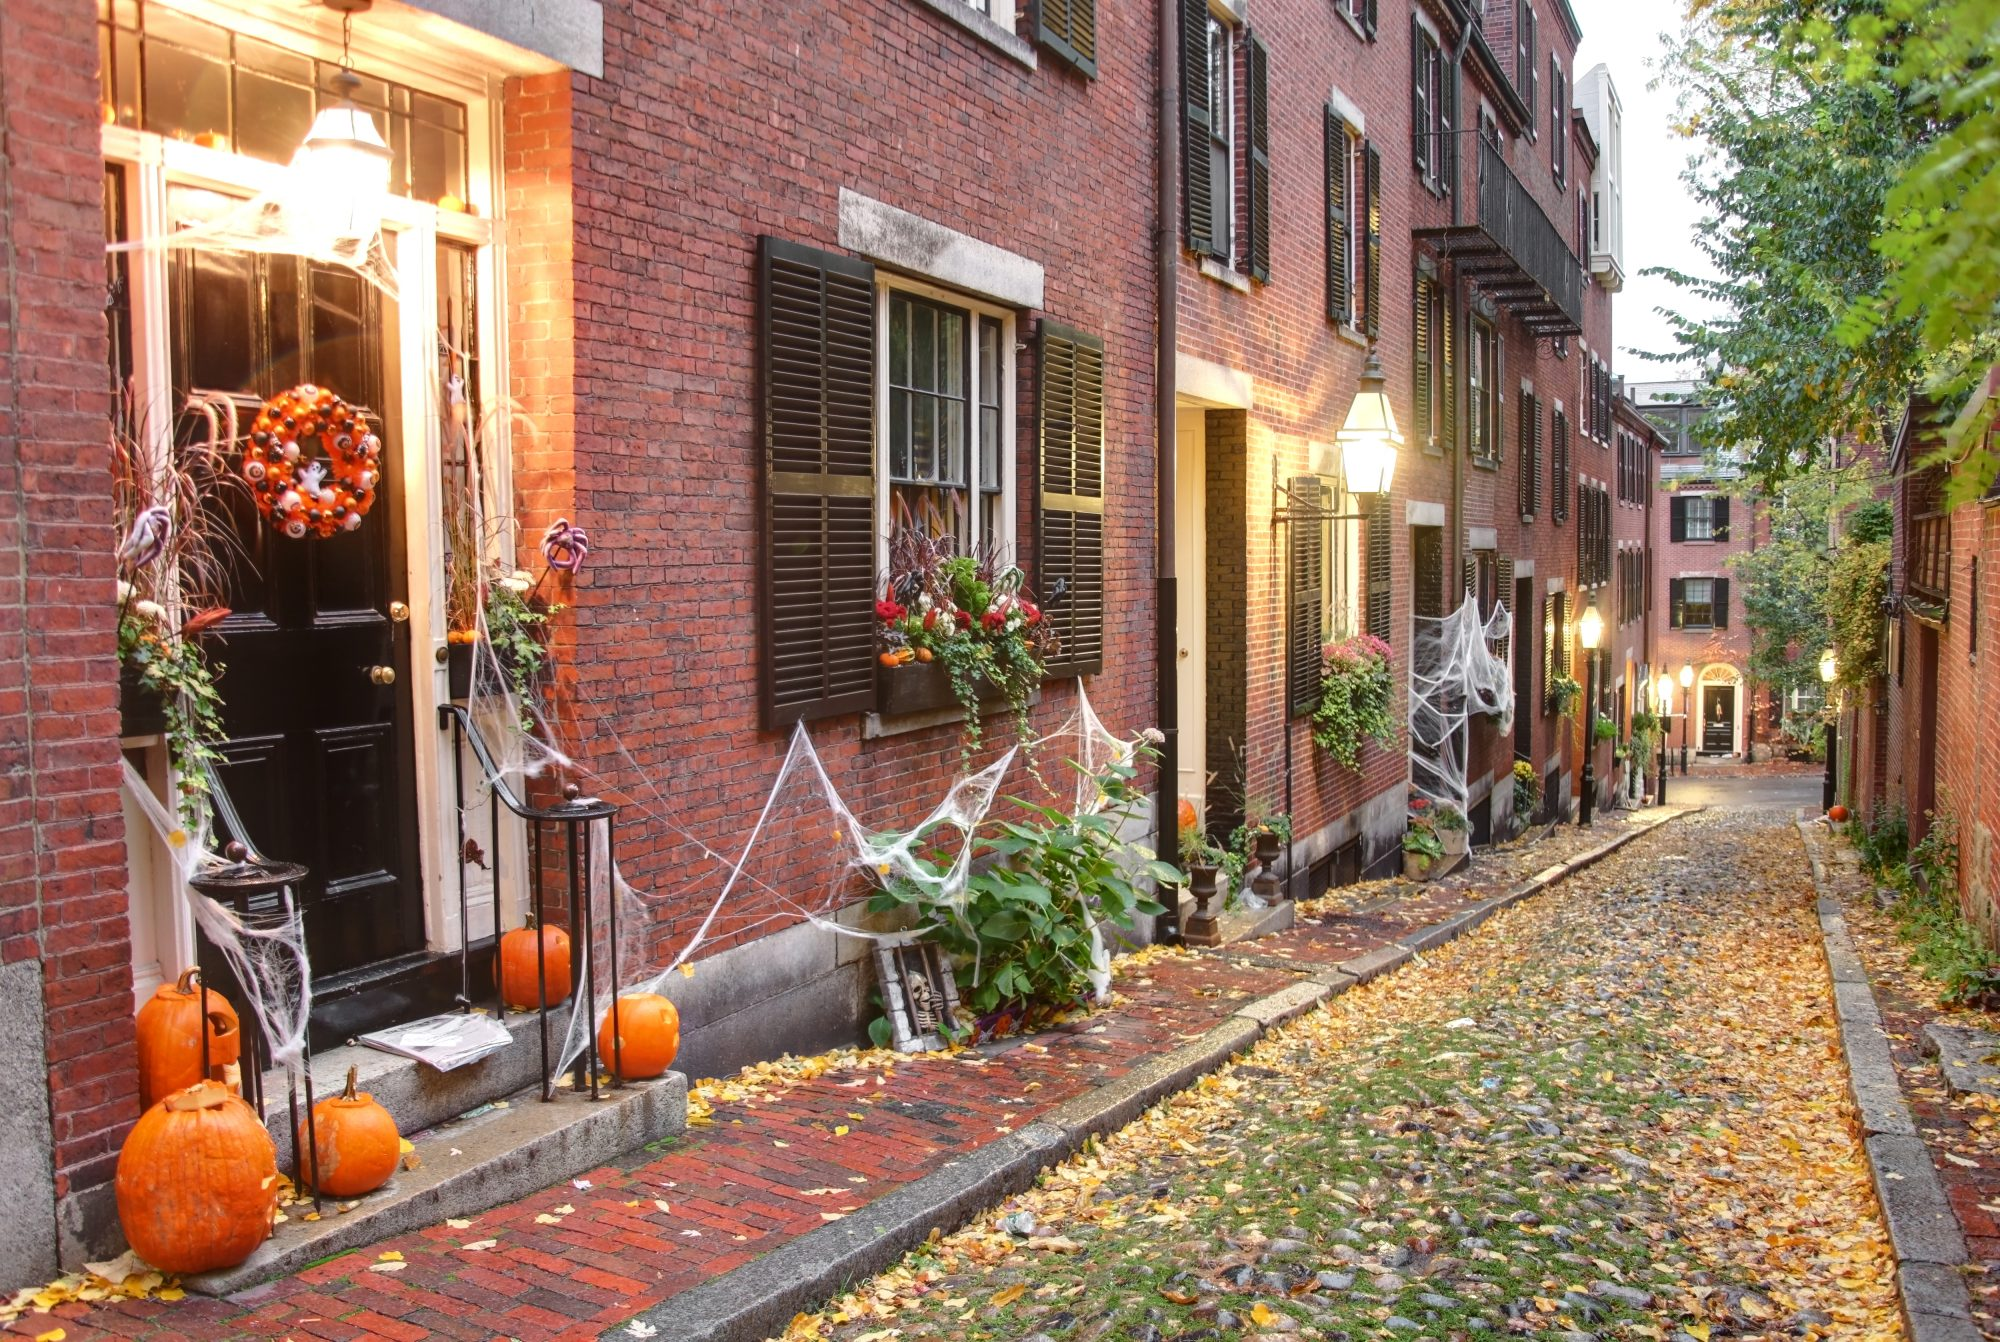 Image of Beacon Hill during Halloween